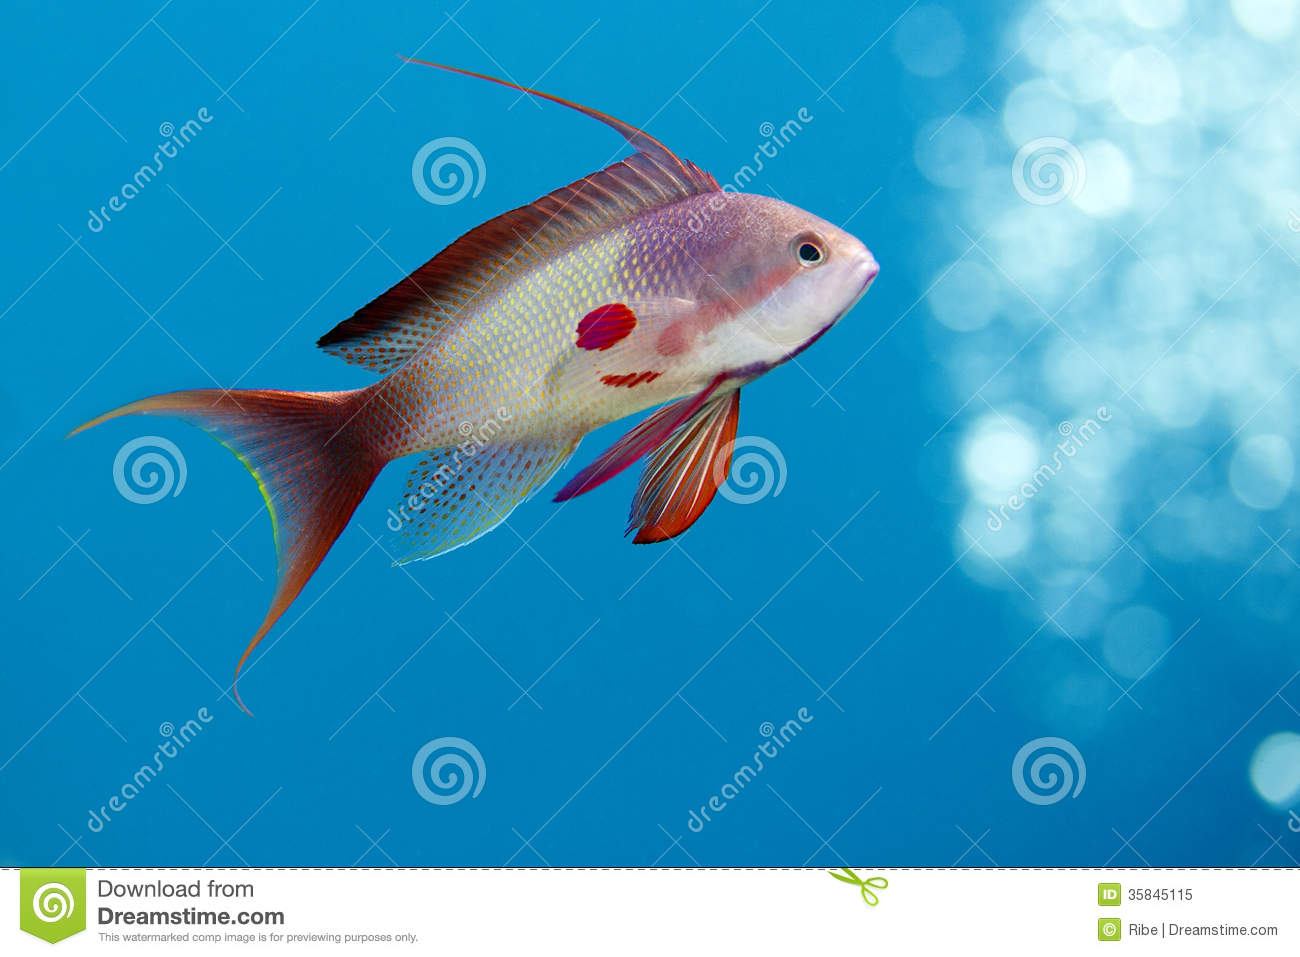 Fish underwater royalty free stock photo image 35845115 for Red saltwater fish